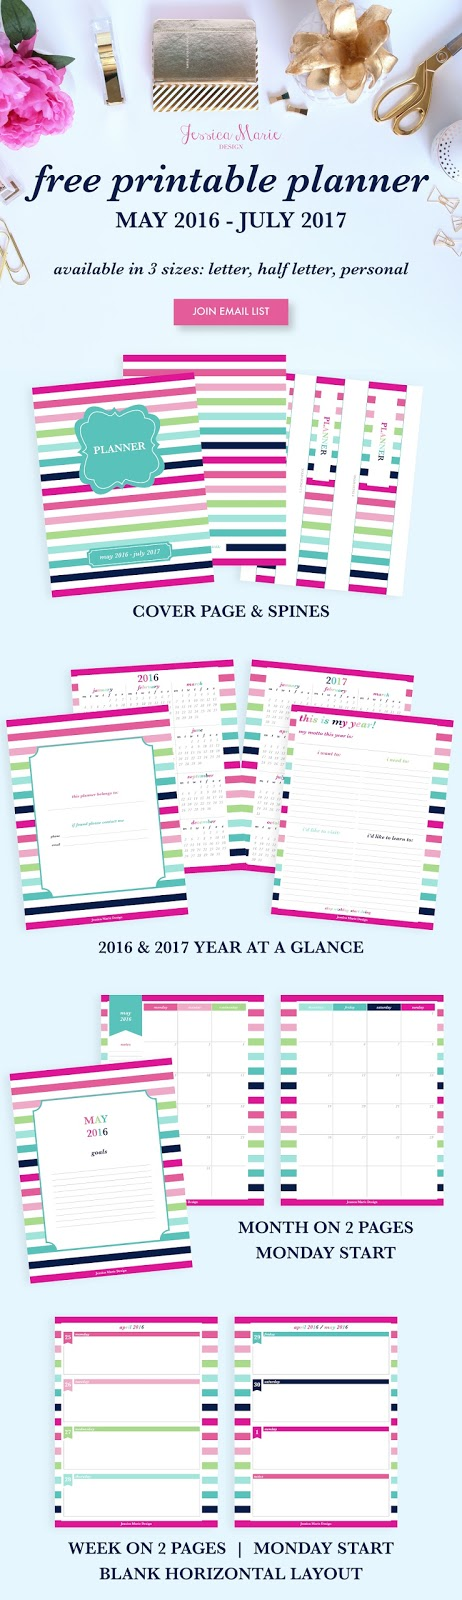 Free 2016-2017 Printable Planner by Jessica Marie Design!